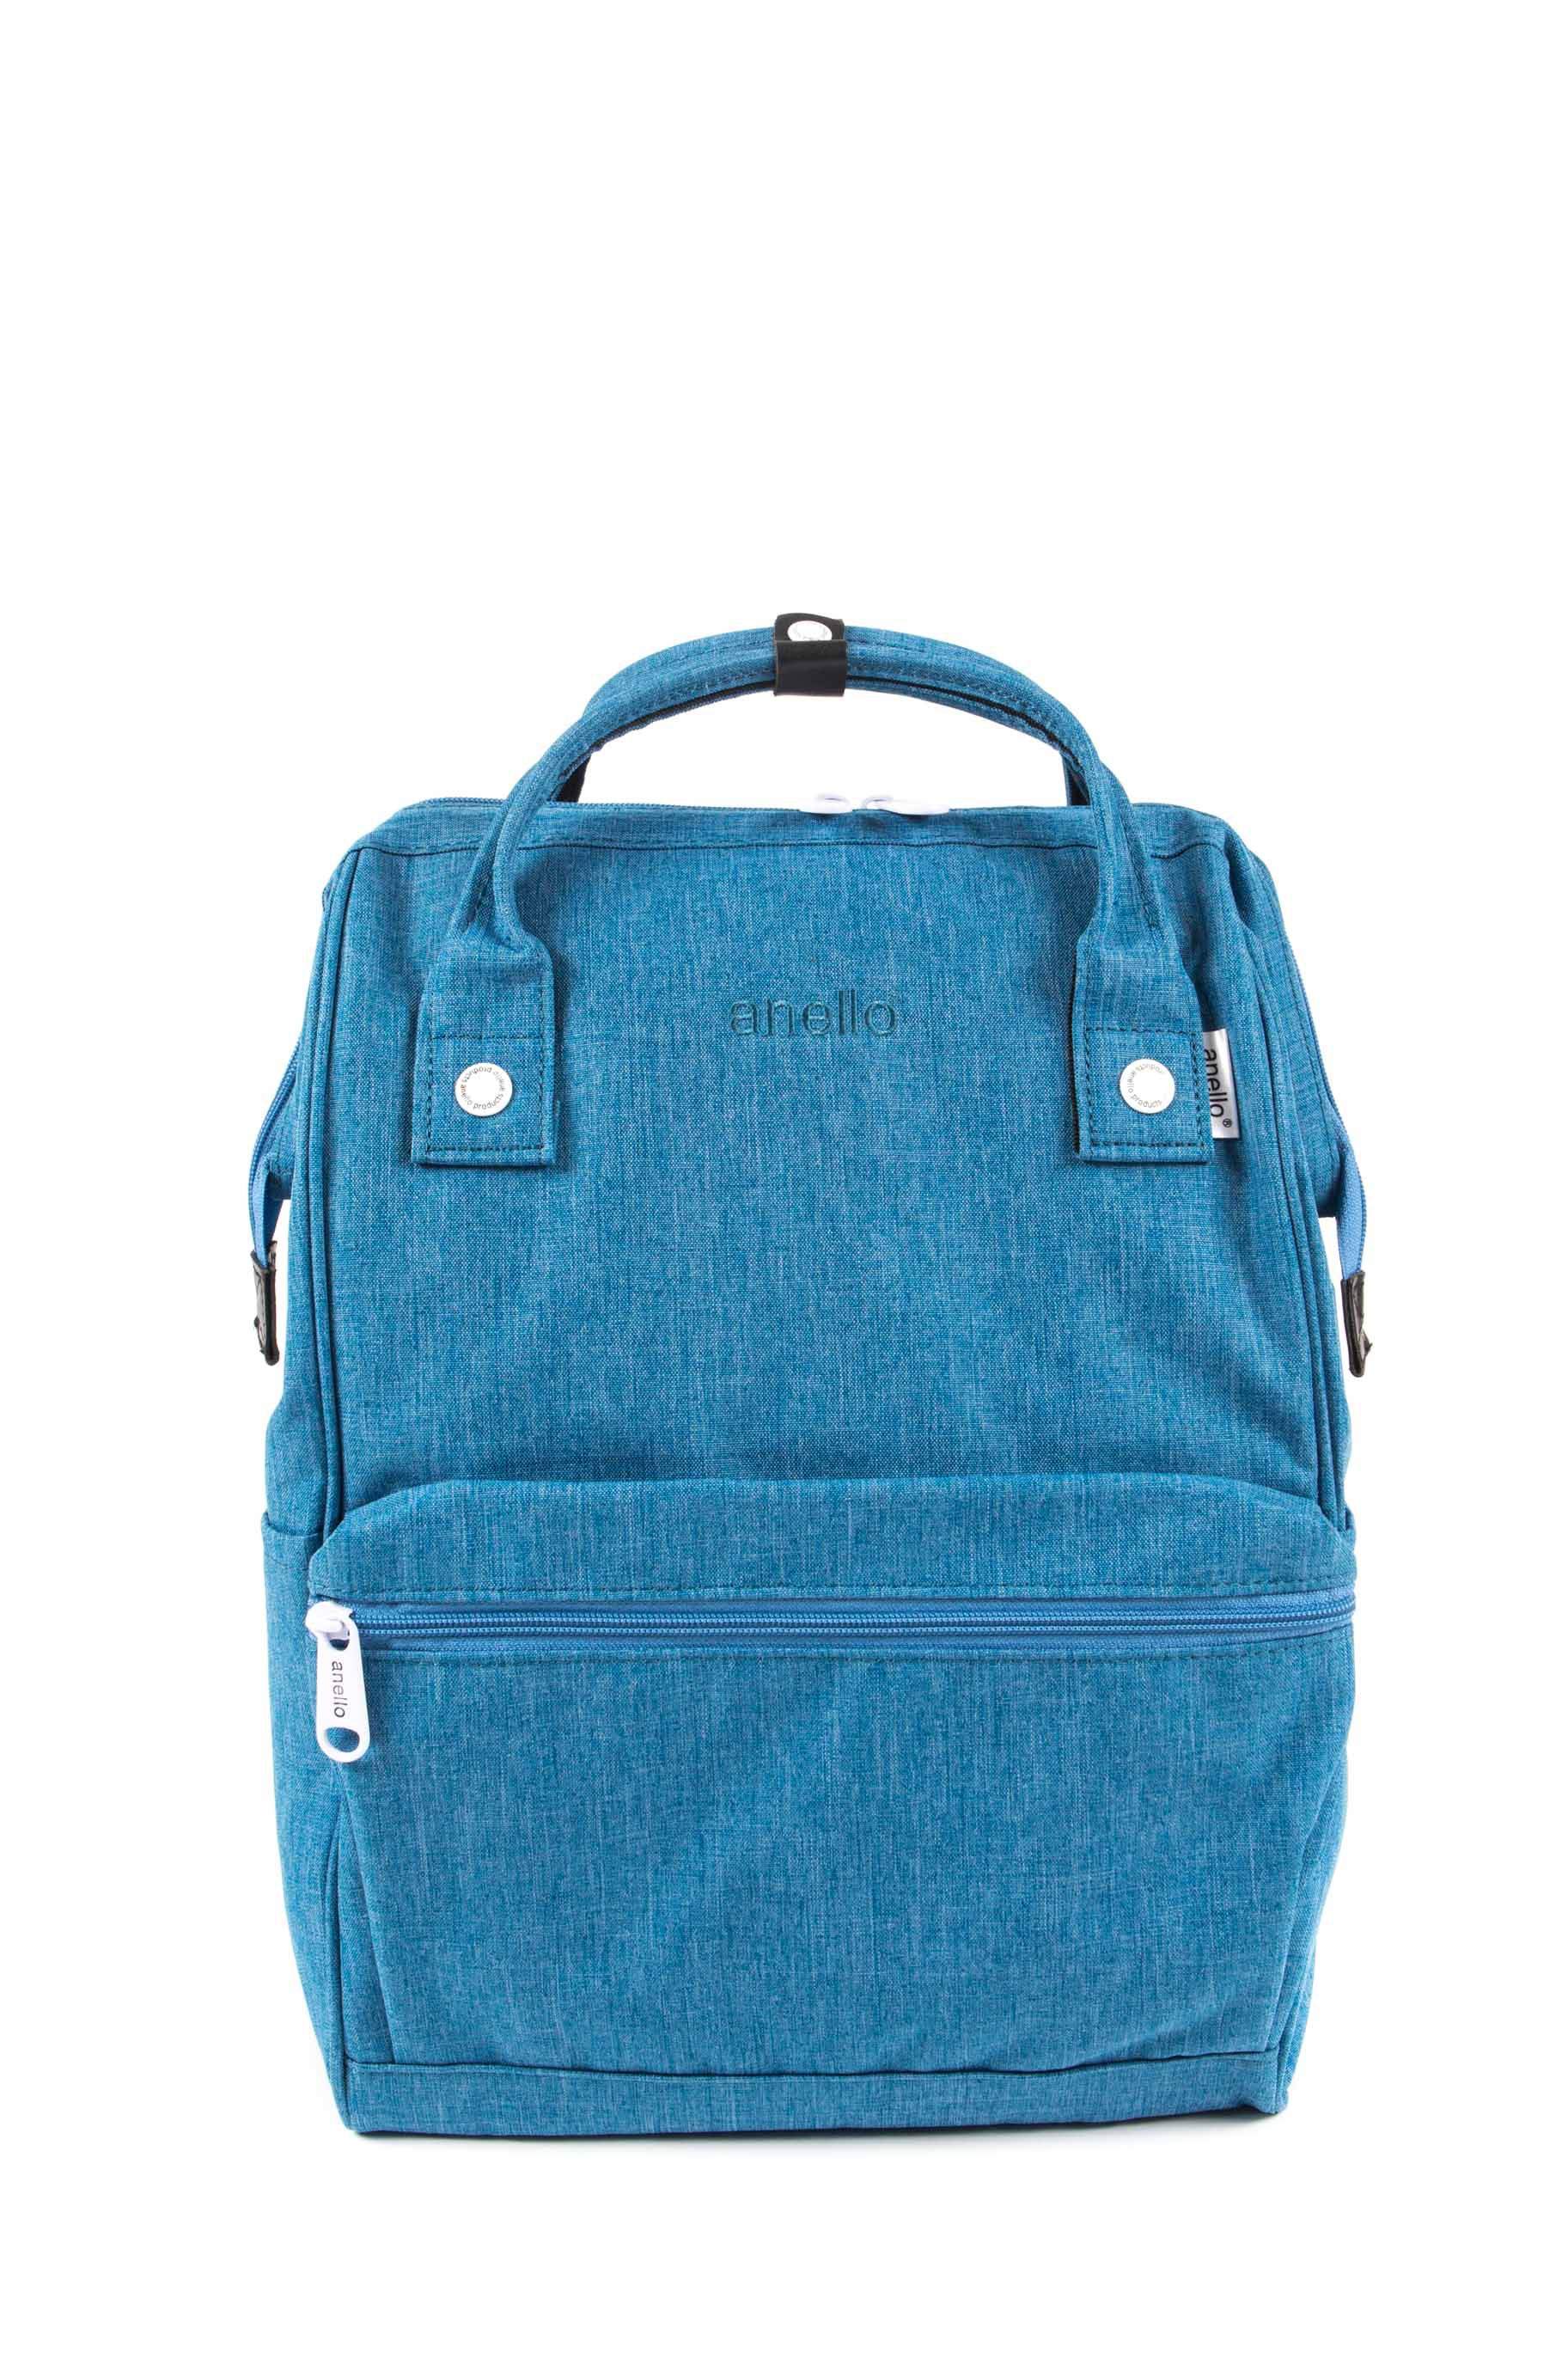 754c0689cac Anello Mottled Polyester Canvas BackPack - Cerulean — The Lifestyle ...